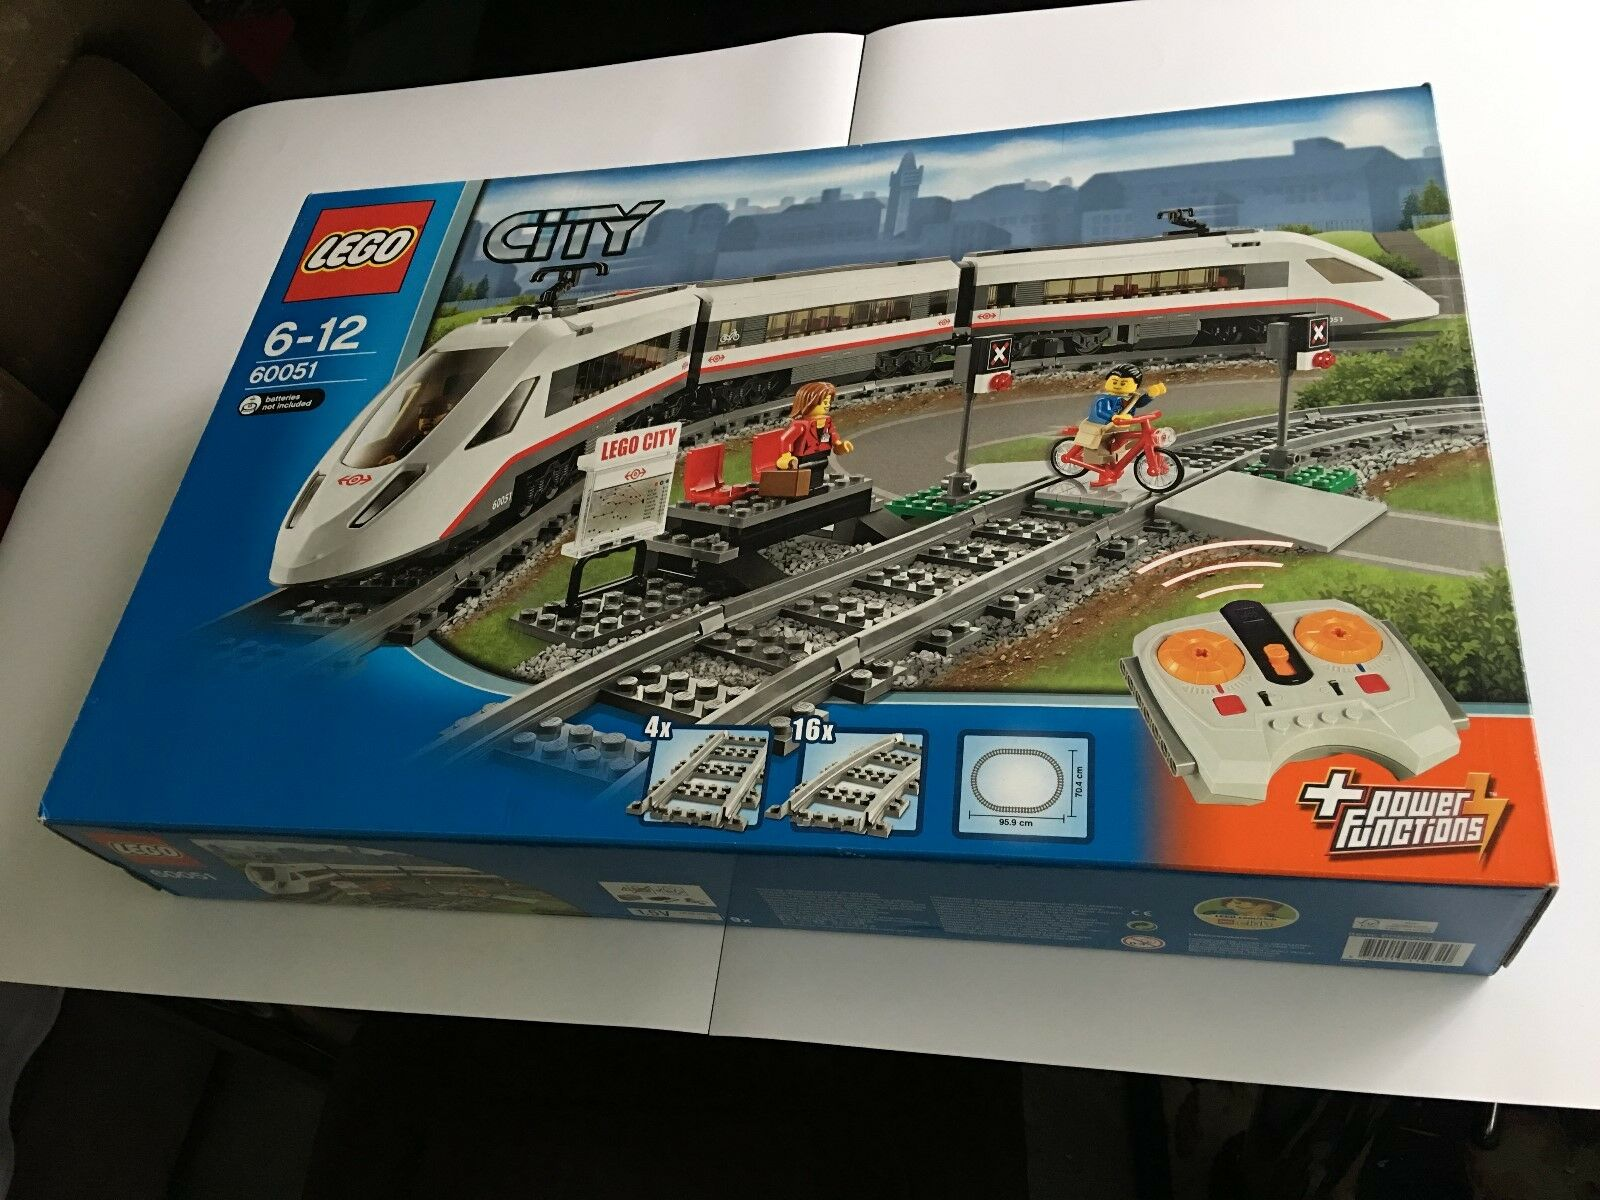 LEGO 60051 City Train High Speed Passenger Station - Brand New & Sealed